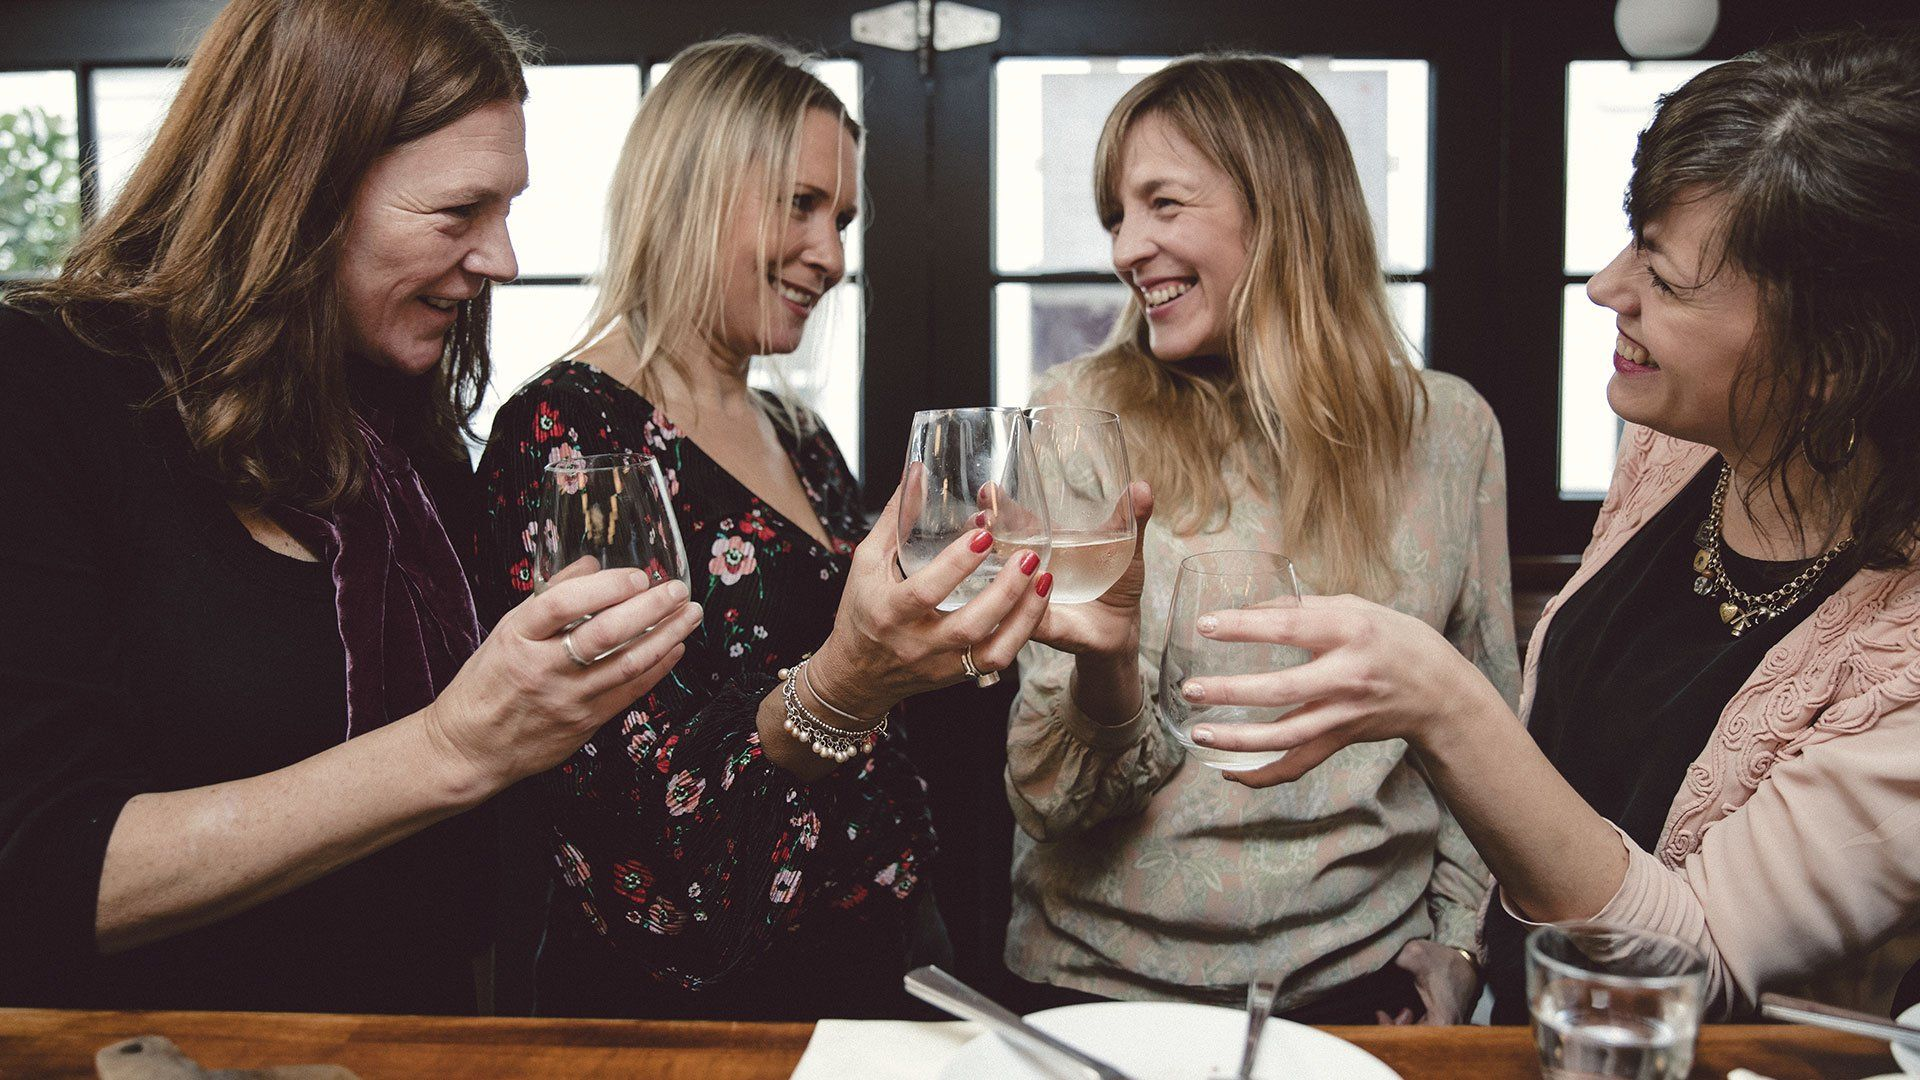 4 females toasting in a restaurant